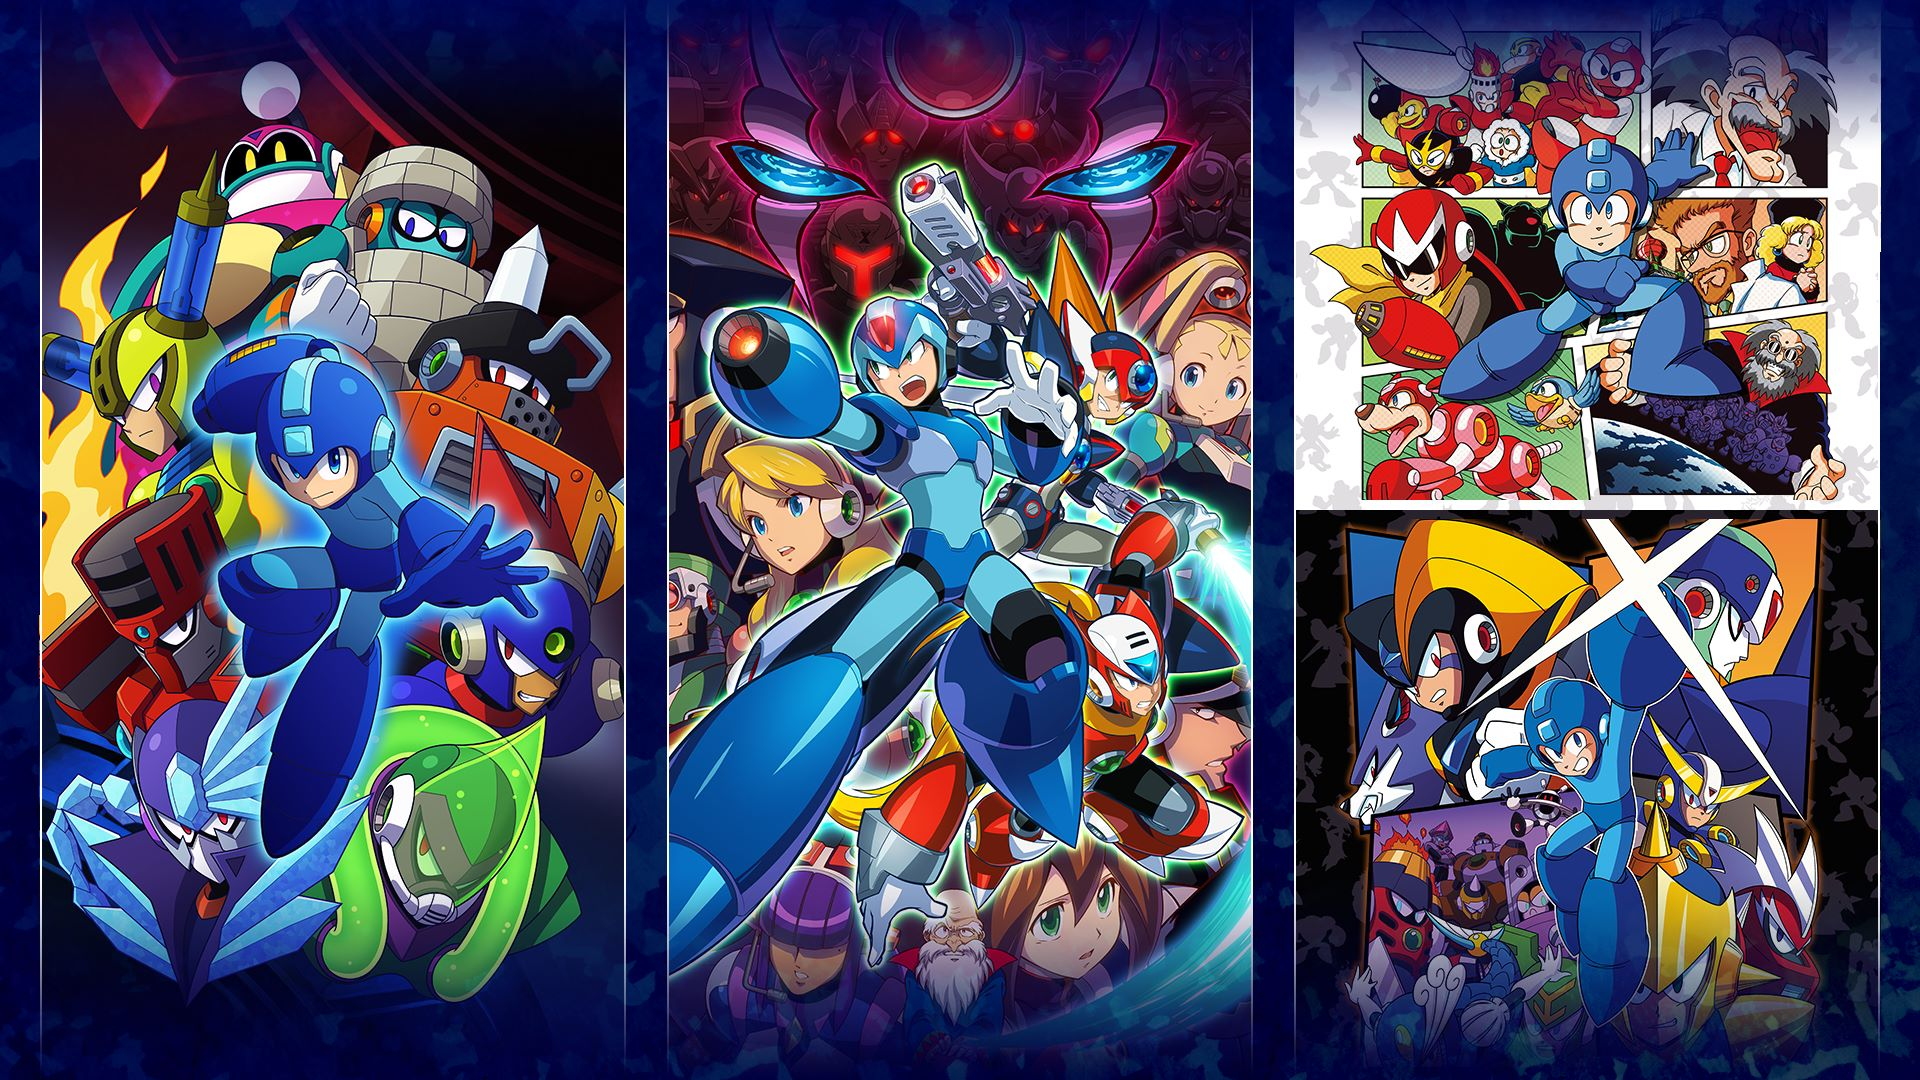 Today's Best Game Deals: Mega Man 30th Anniversary (19 games) $48, Nioh $15, more